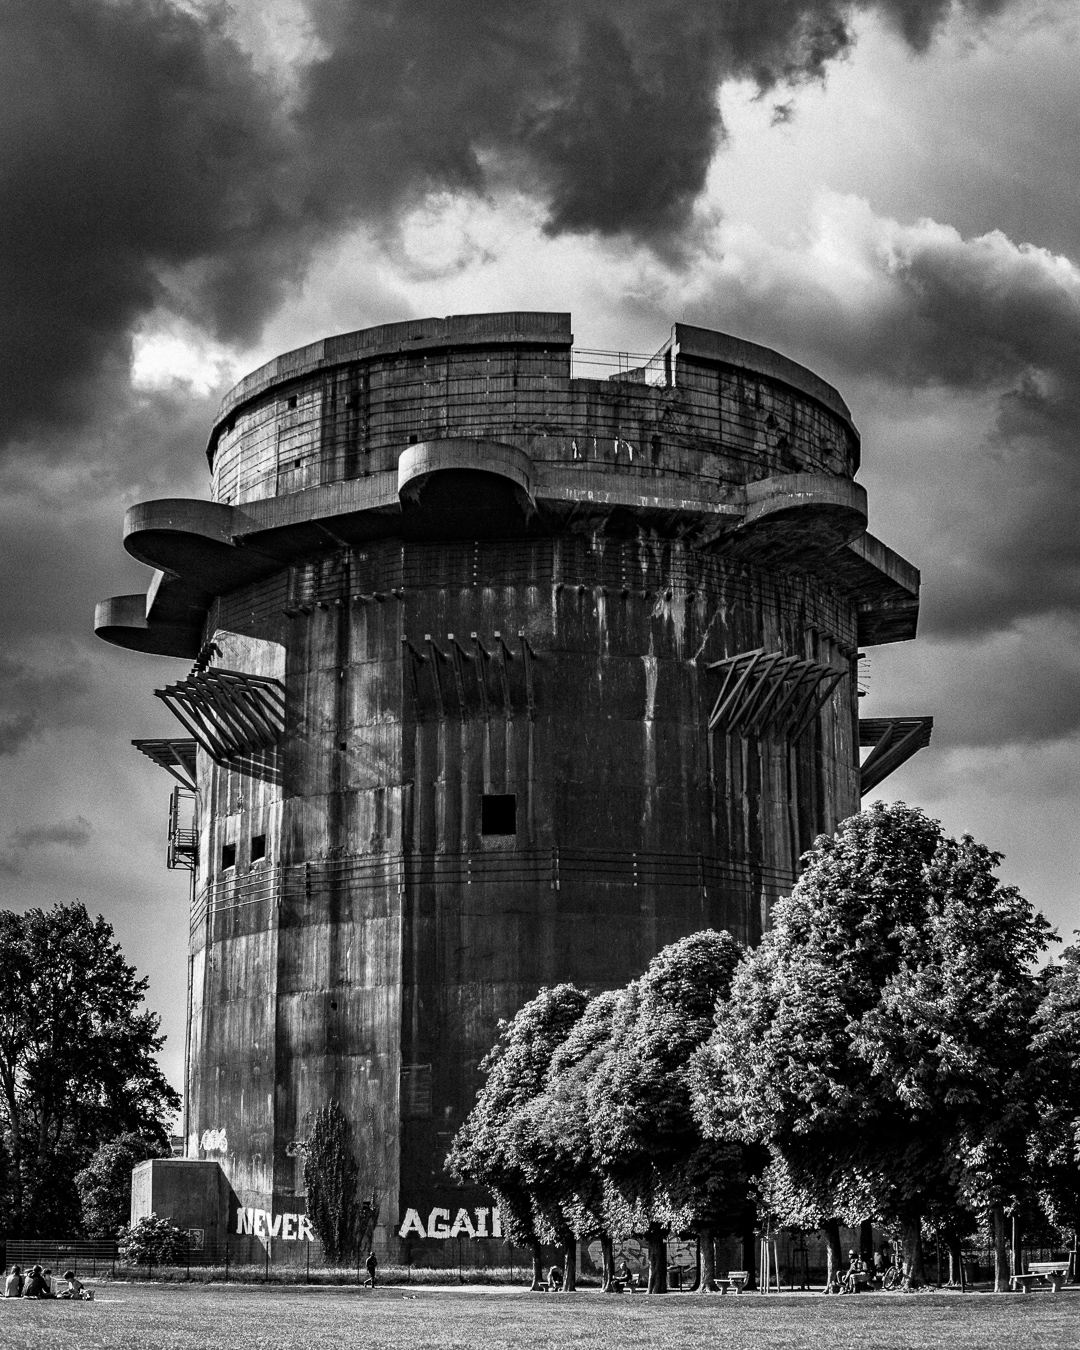 Flak Tower, Vienna, Austria, 2018